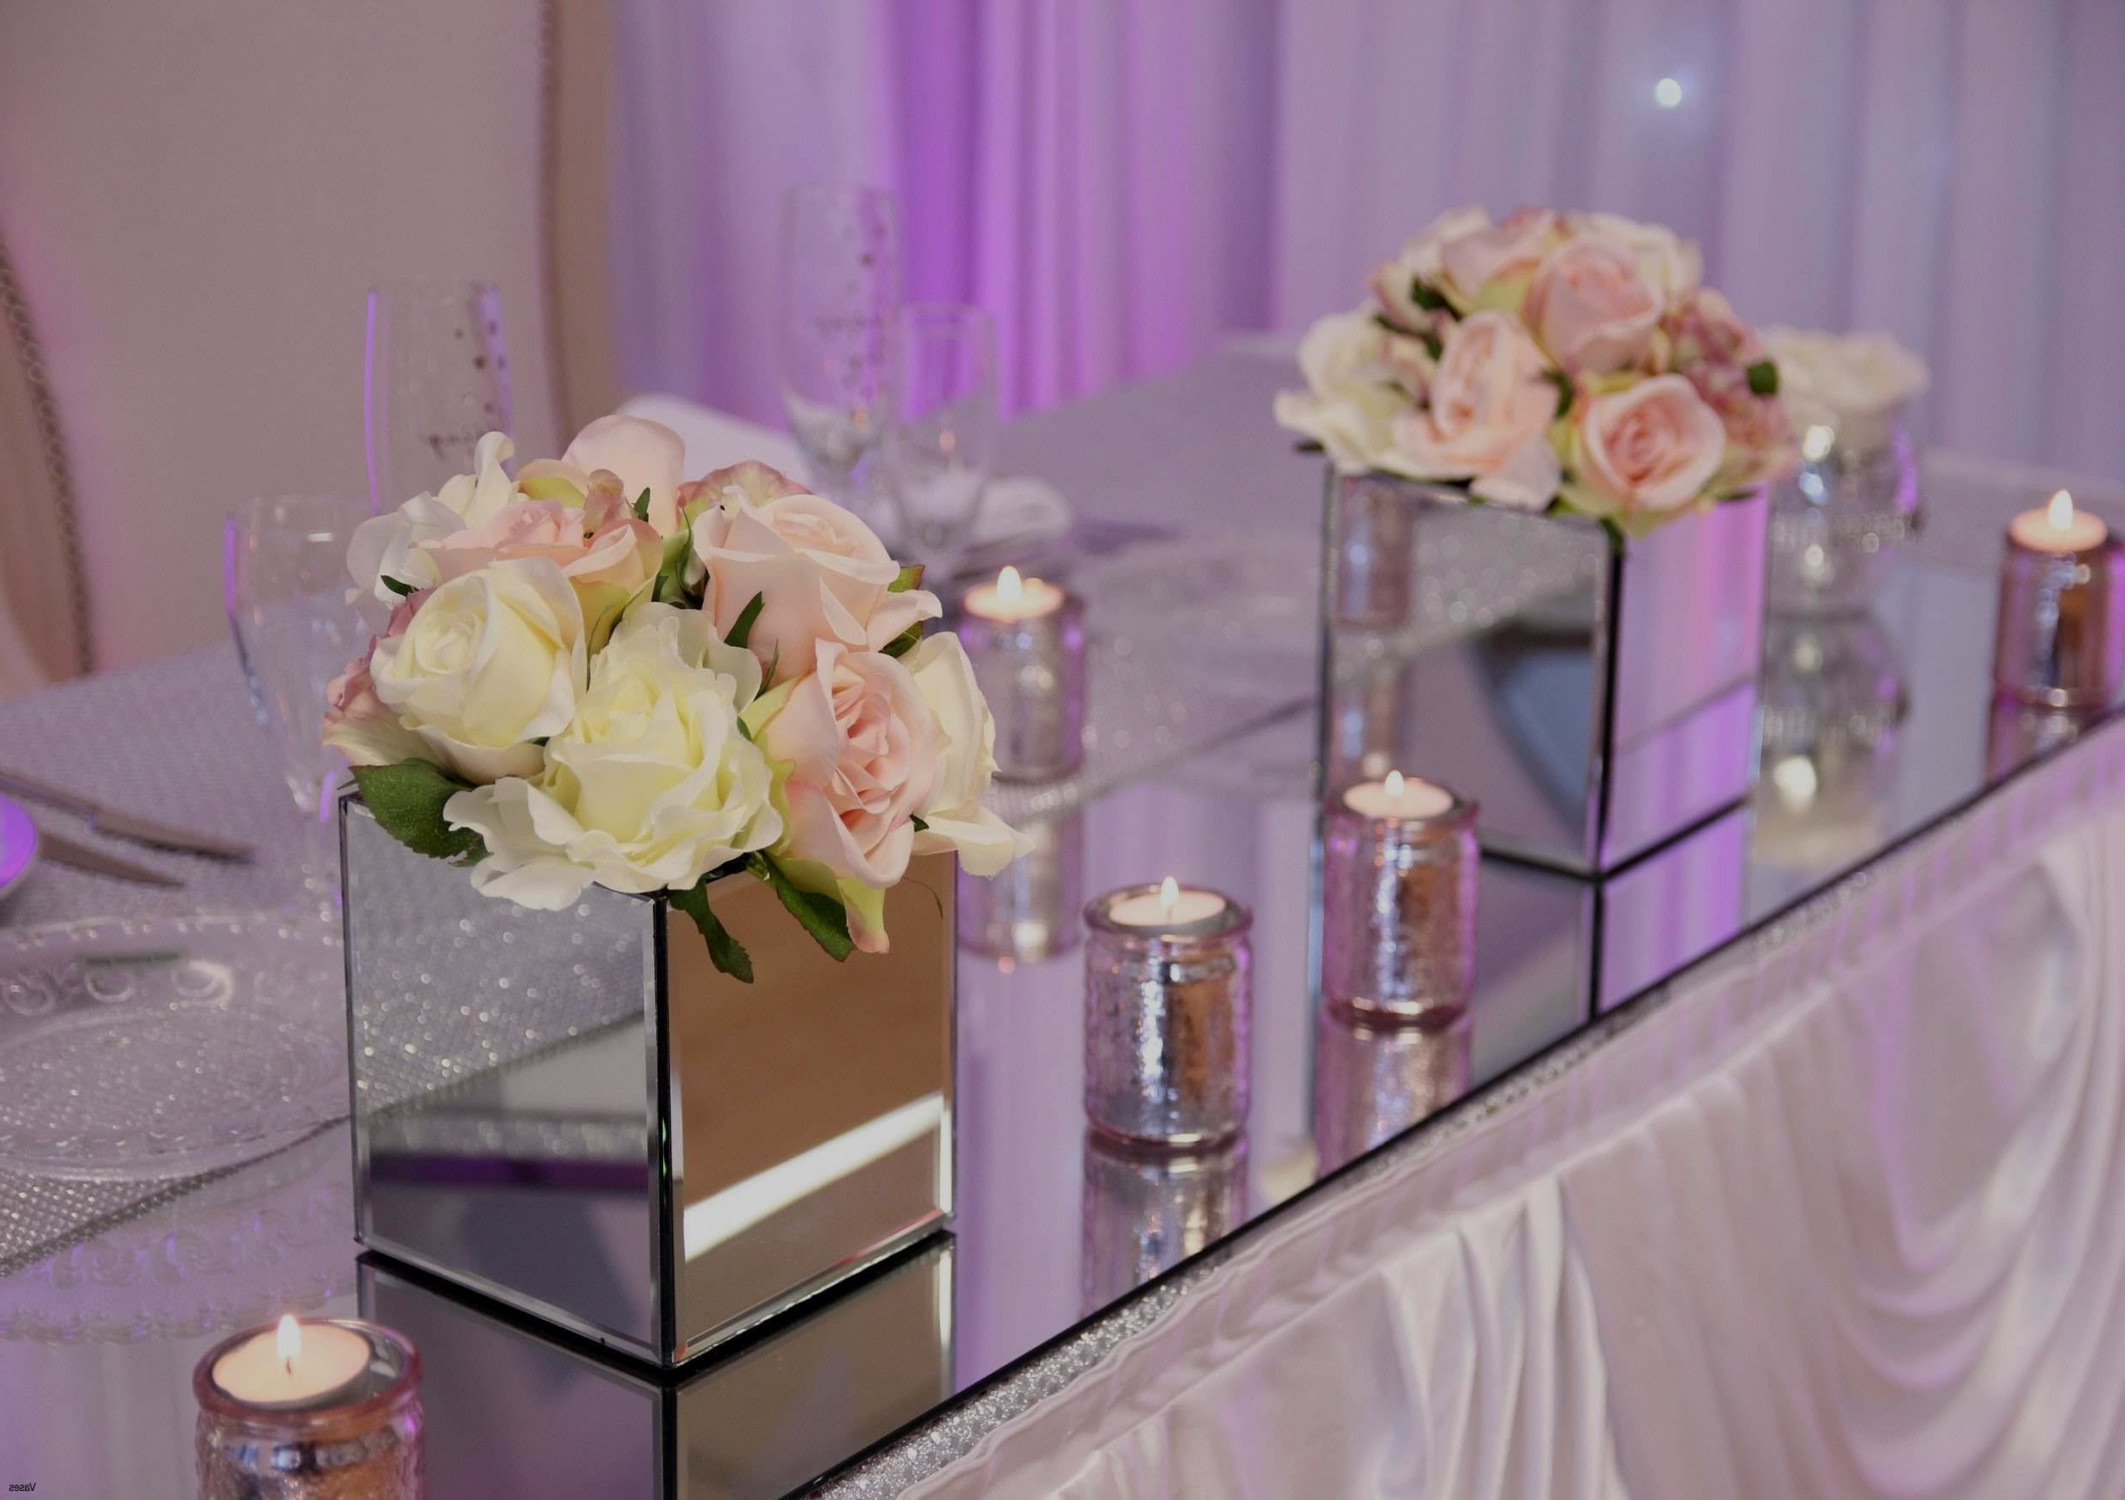 wedding table flower vases of 18 awesome halloween decoration outdoor ideas fresh home design ideas regarding mirrored square vase 3h vases mirror table decorationi 0d weddings design ideas outdoor lighted halloween